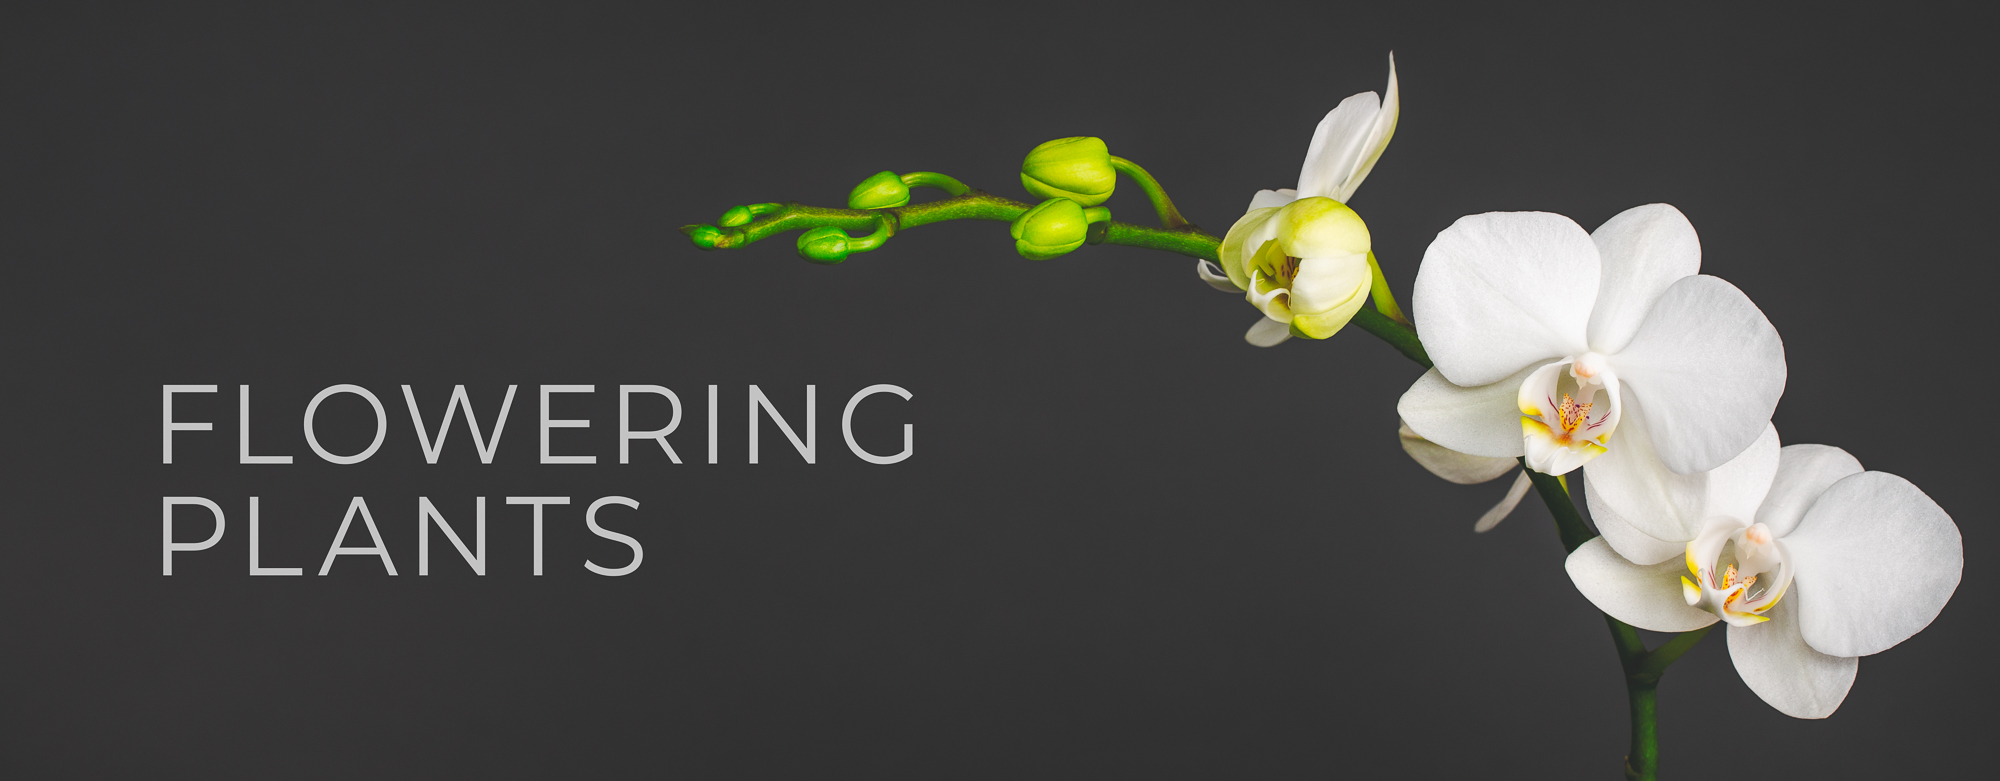 flowering plants header